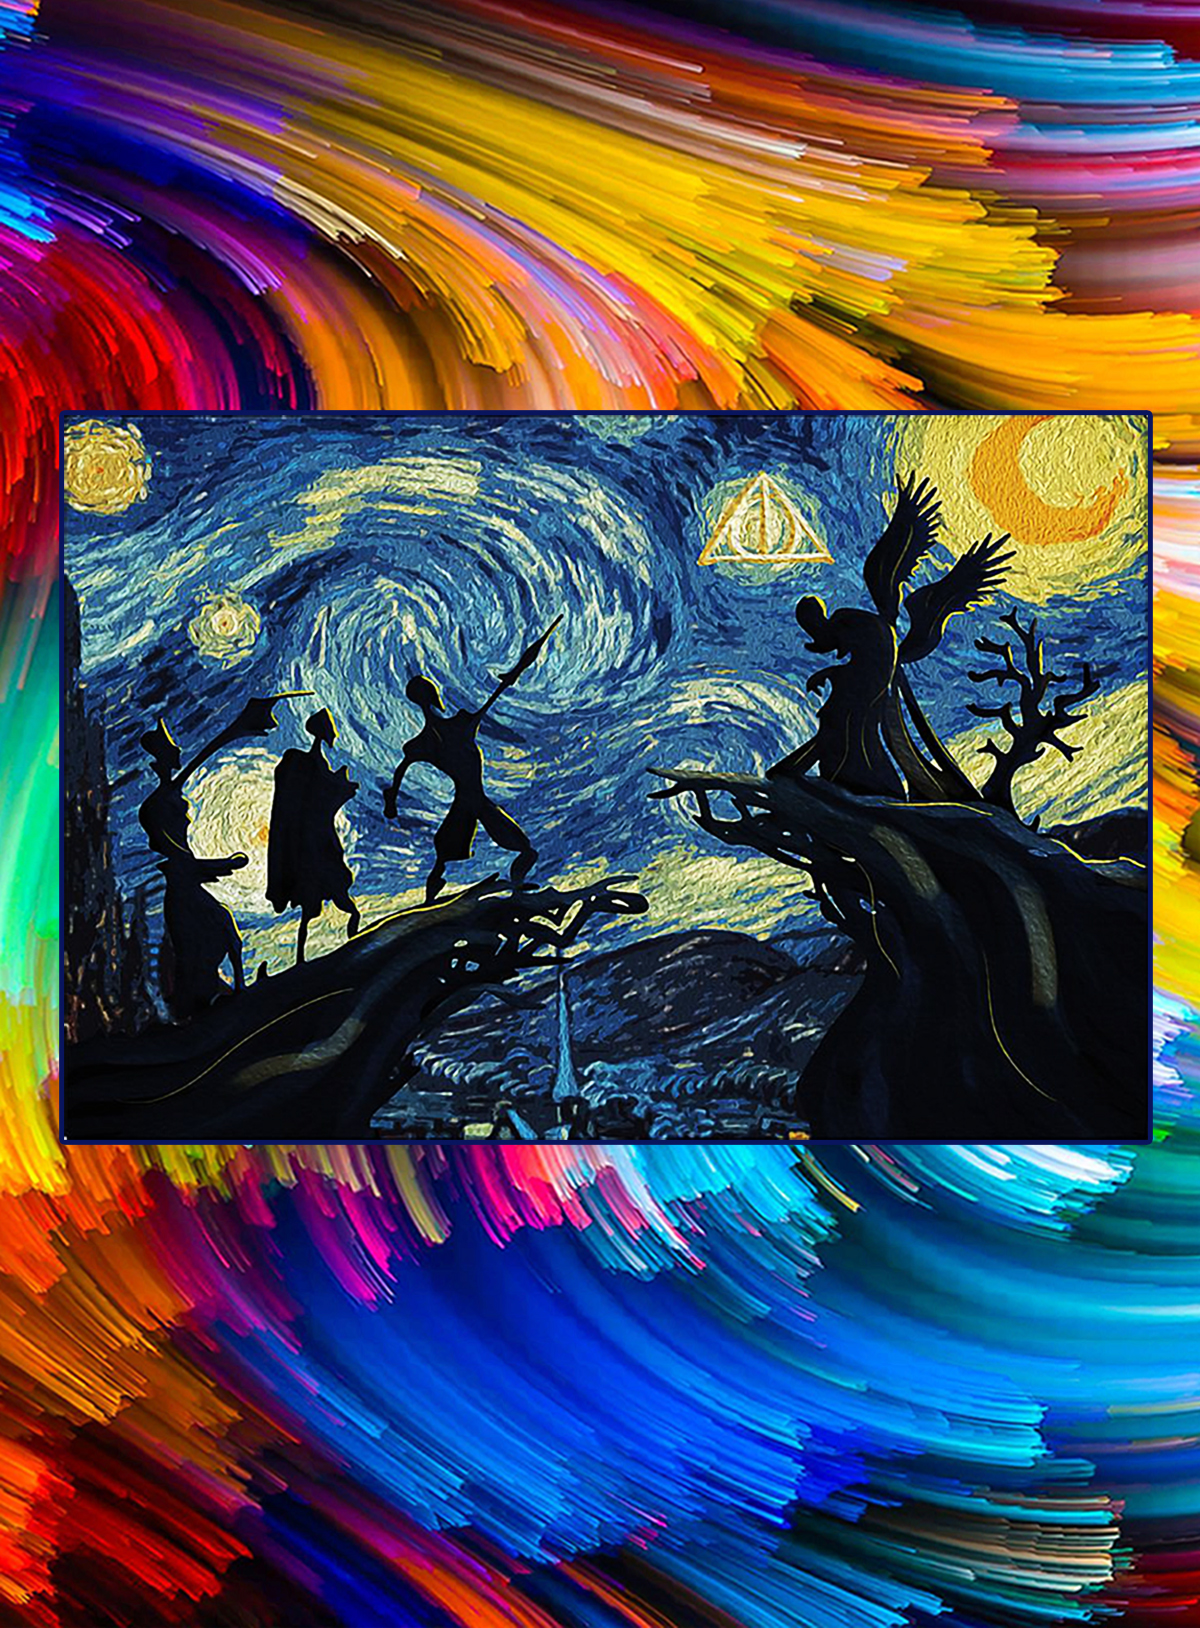 Starry night Deathly hallows harry potter poster - A1